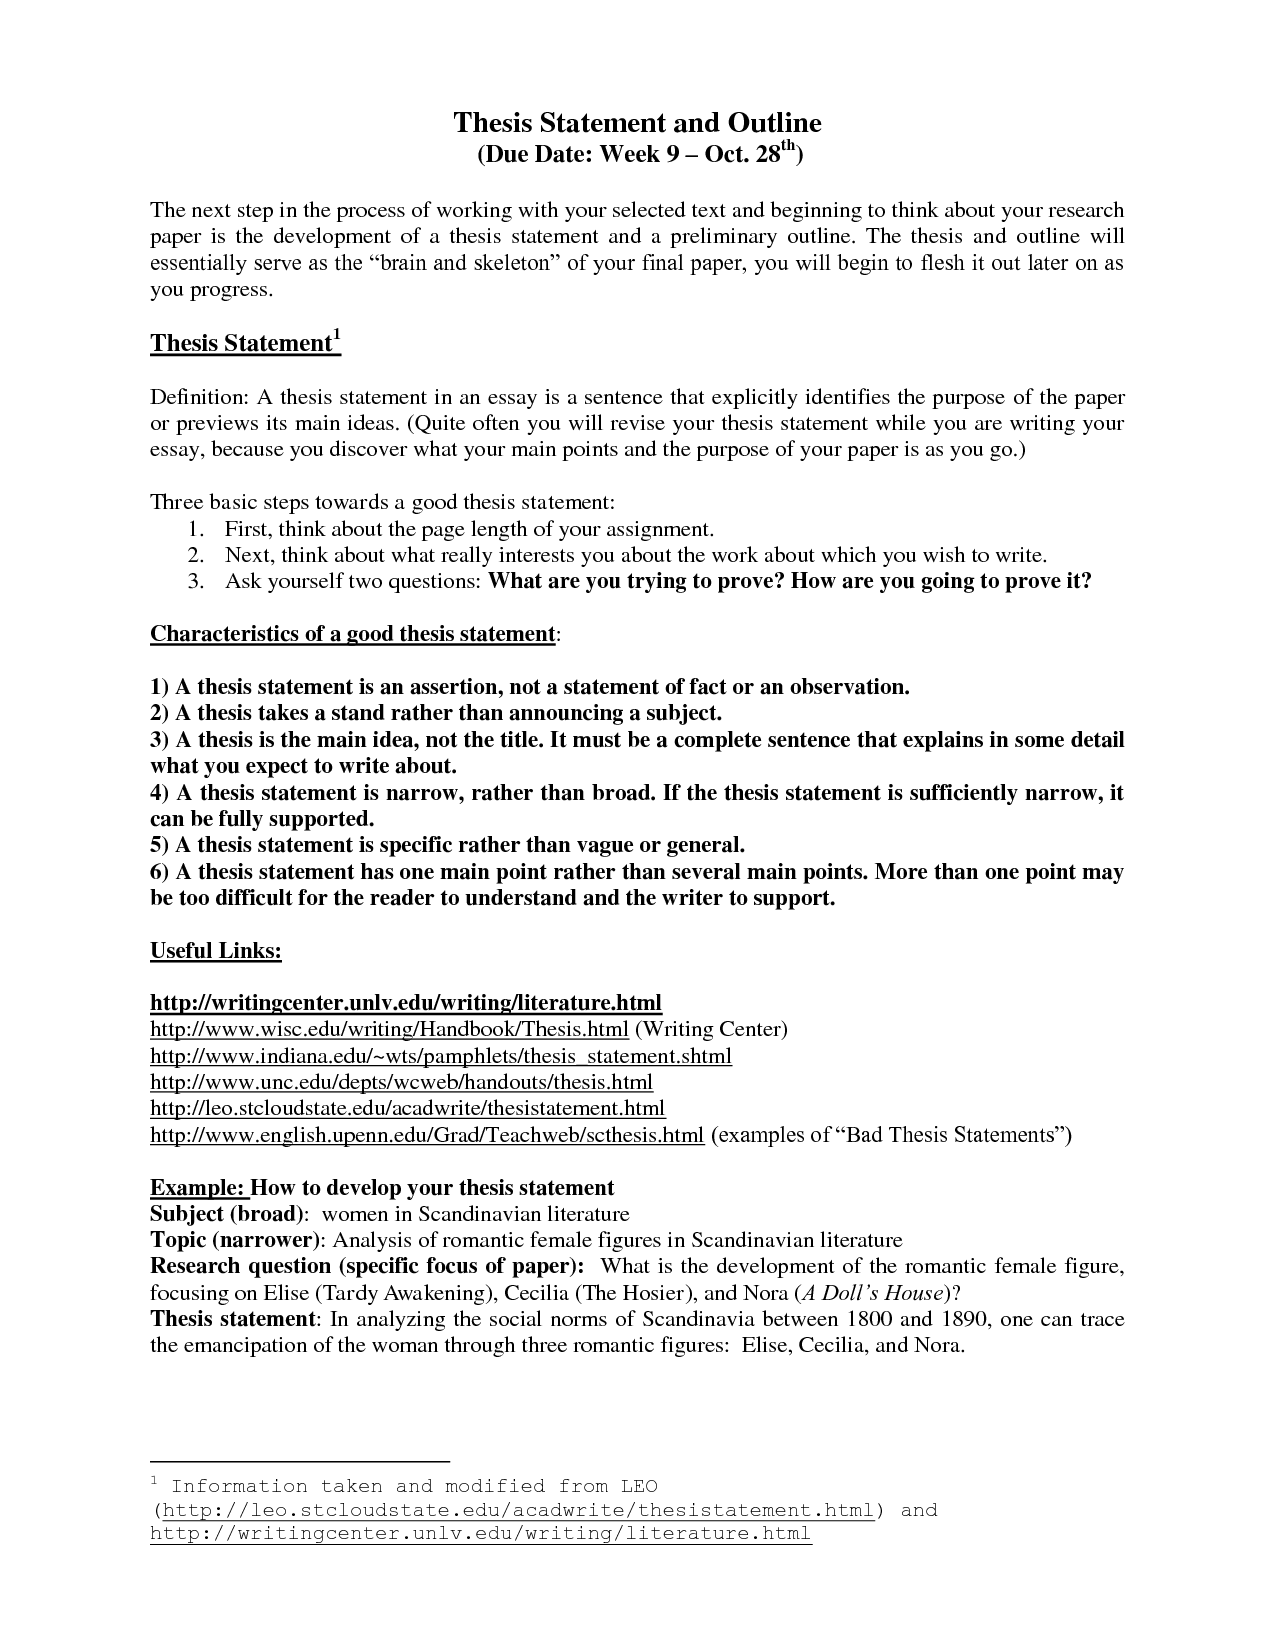 004 Argument Research Paper Thesis Statements Wondrous Argumentative Statement Examples Full